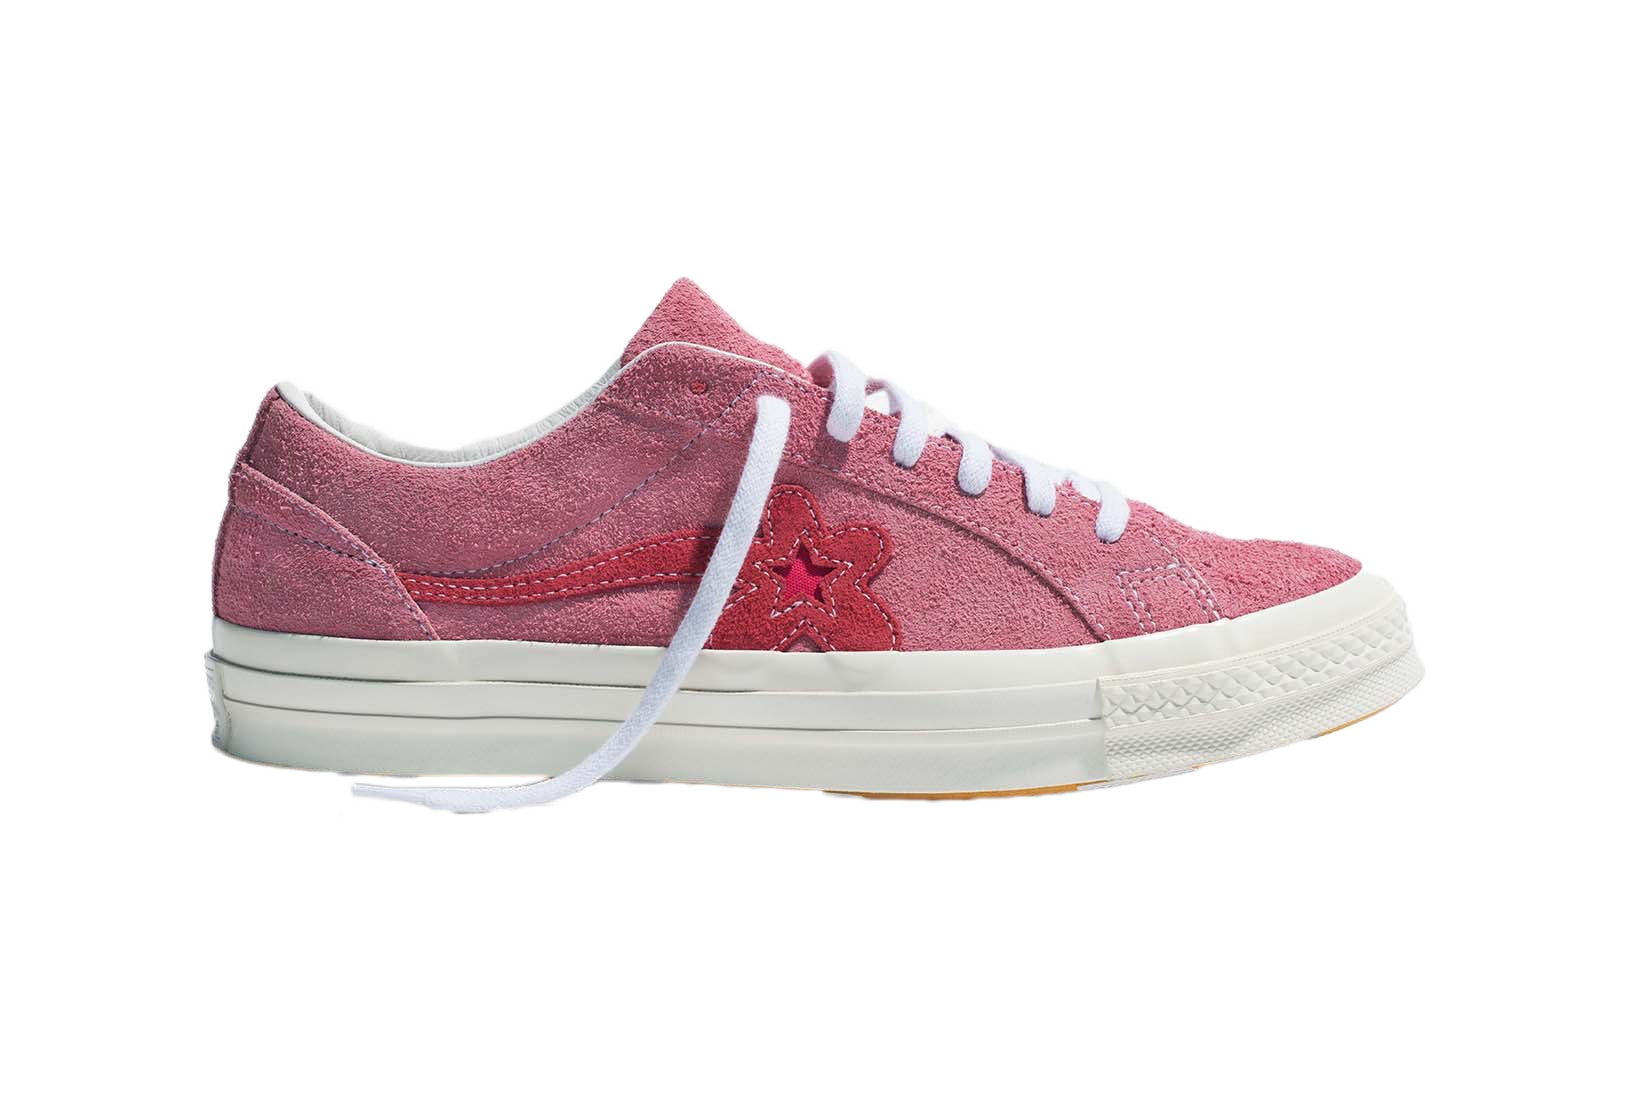 Converse One Star Ox Tyler the Creator Golf Le Fleur Geranium Pink